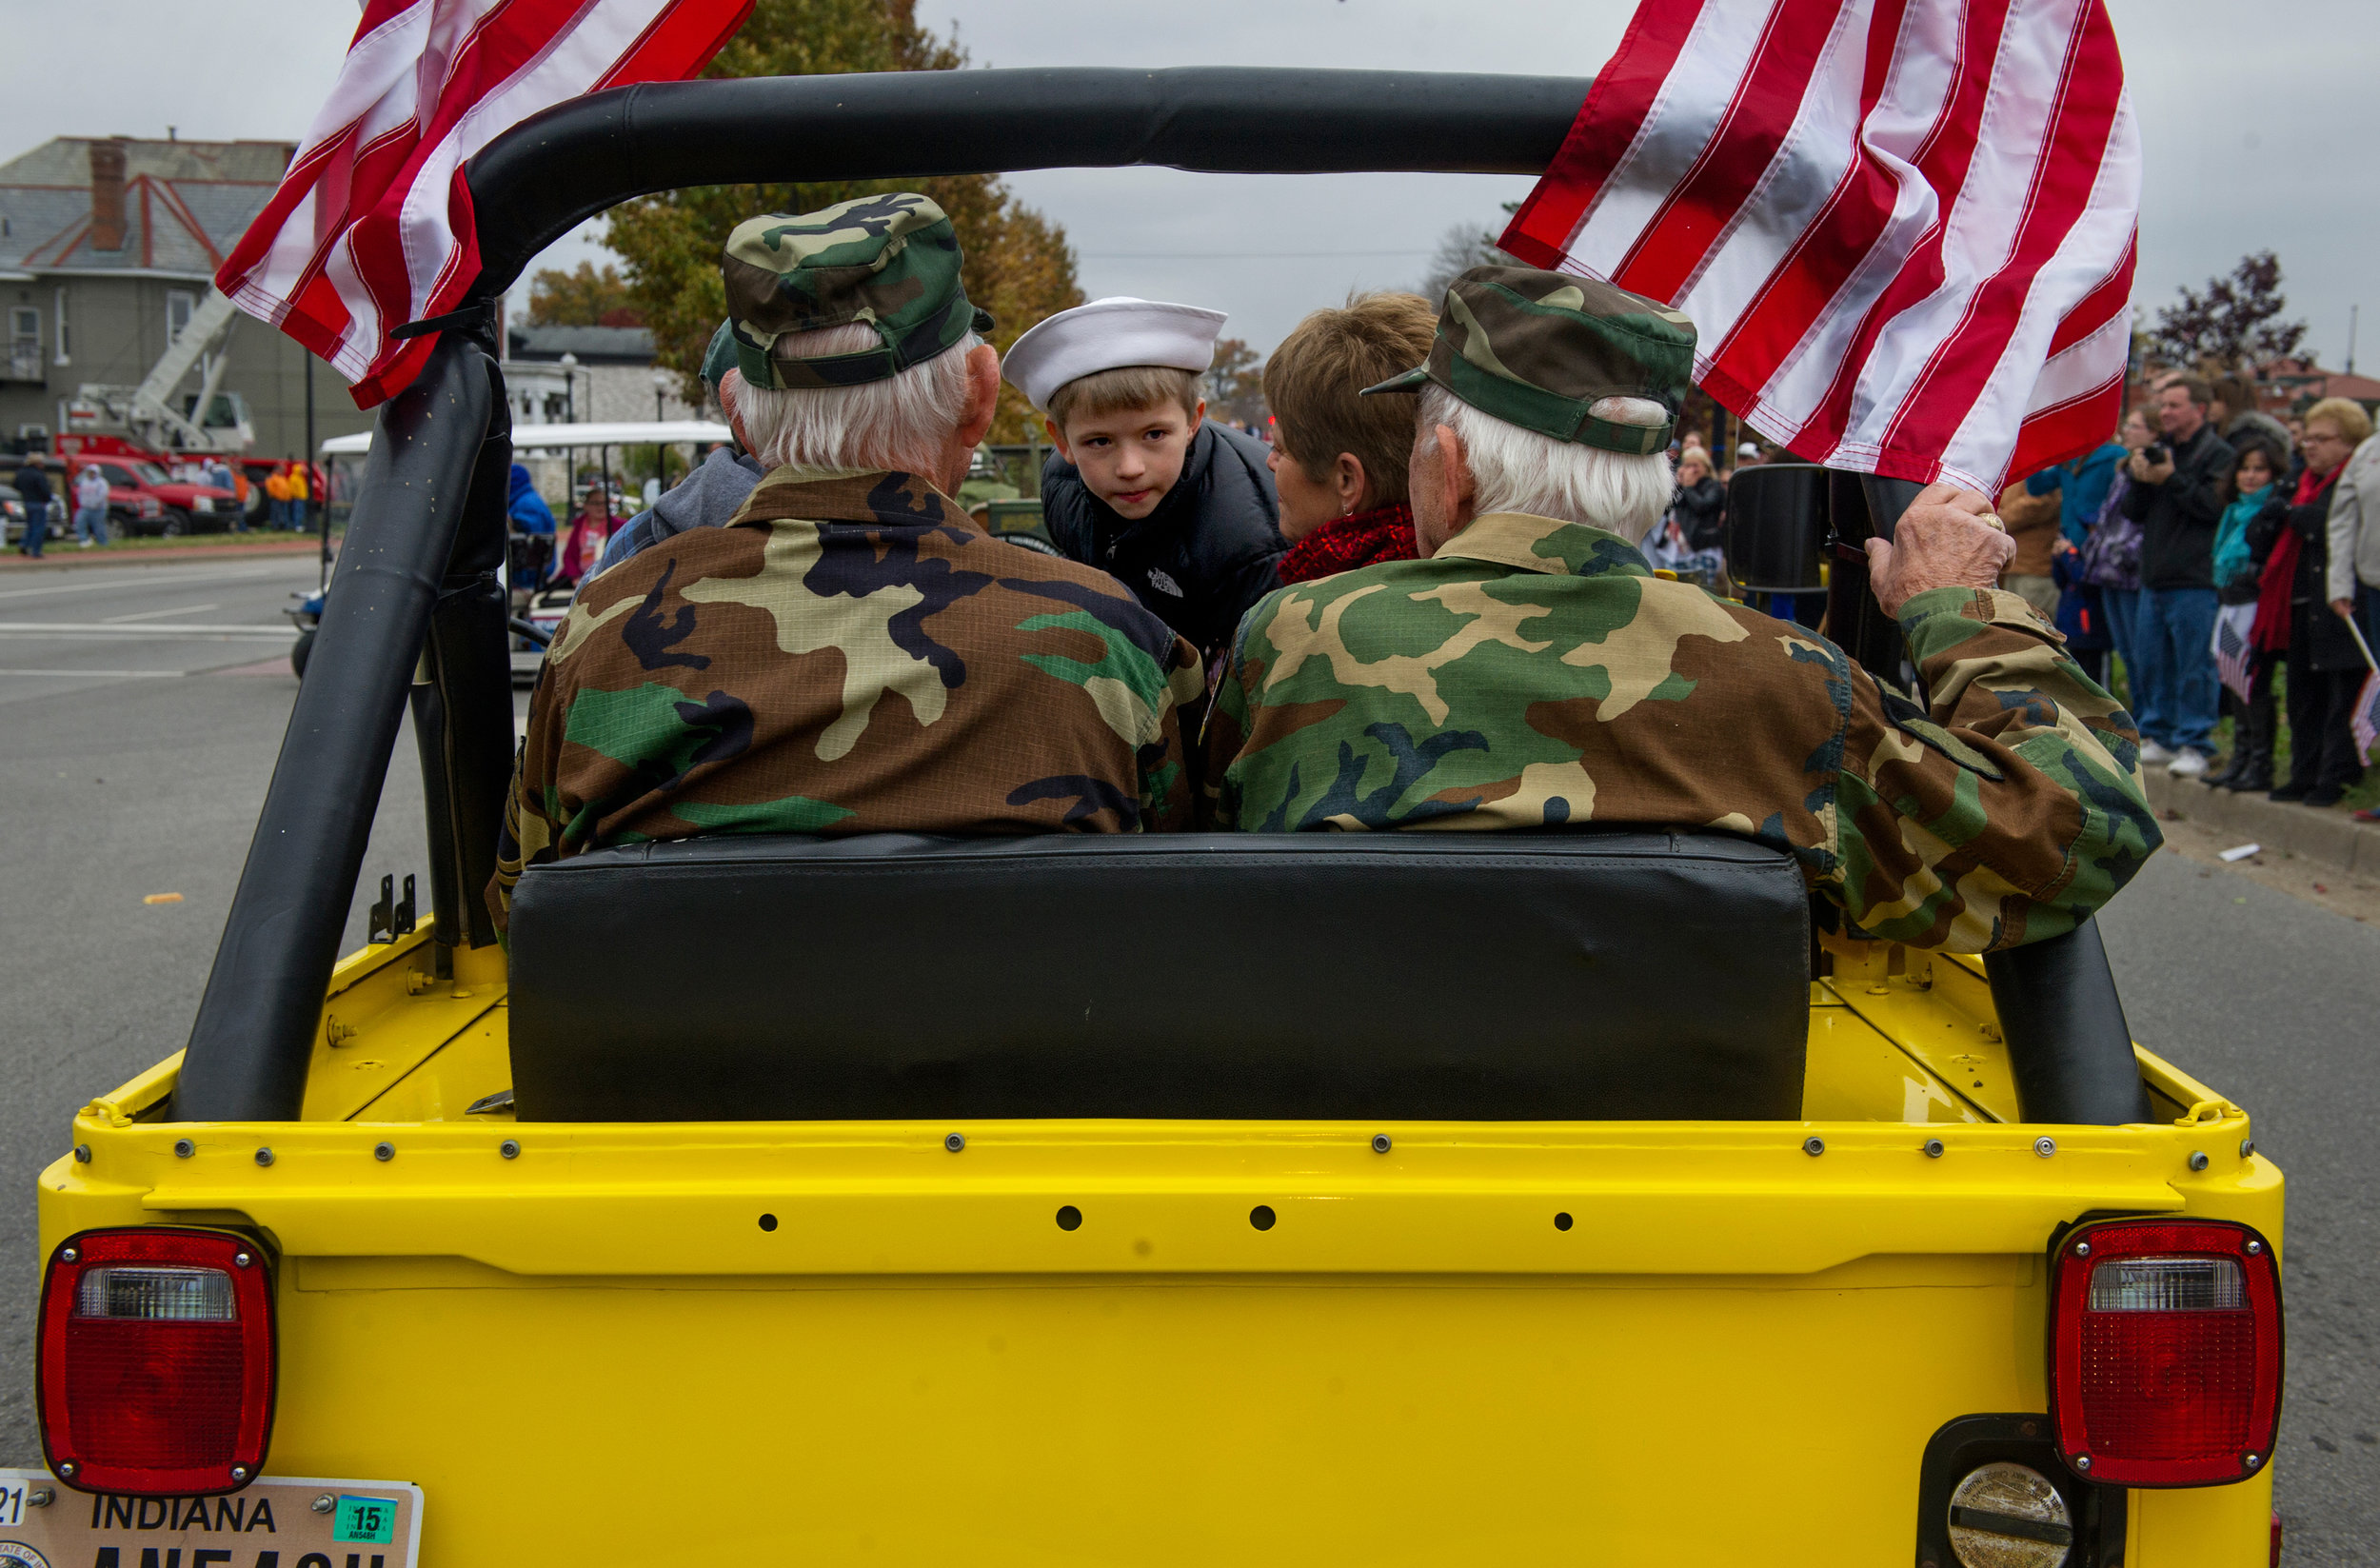 World War II Army veterans and brothers Dwayne Hume (left) and Donald Hume (right) ride with Joey Langerak, 7, of Evansville in a 1978 Jeep during the Veterans' Day Parade in on Riverside Drive in Evansville Saturday, Nov. 8, 2014.